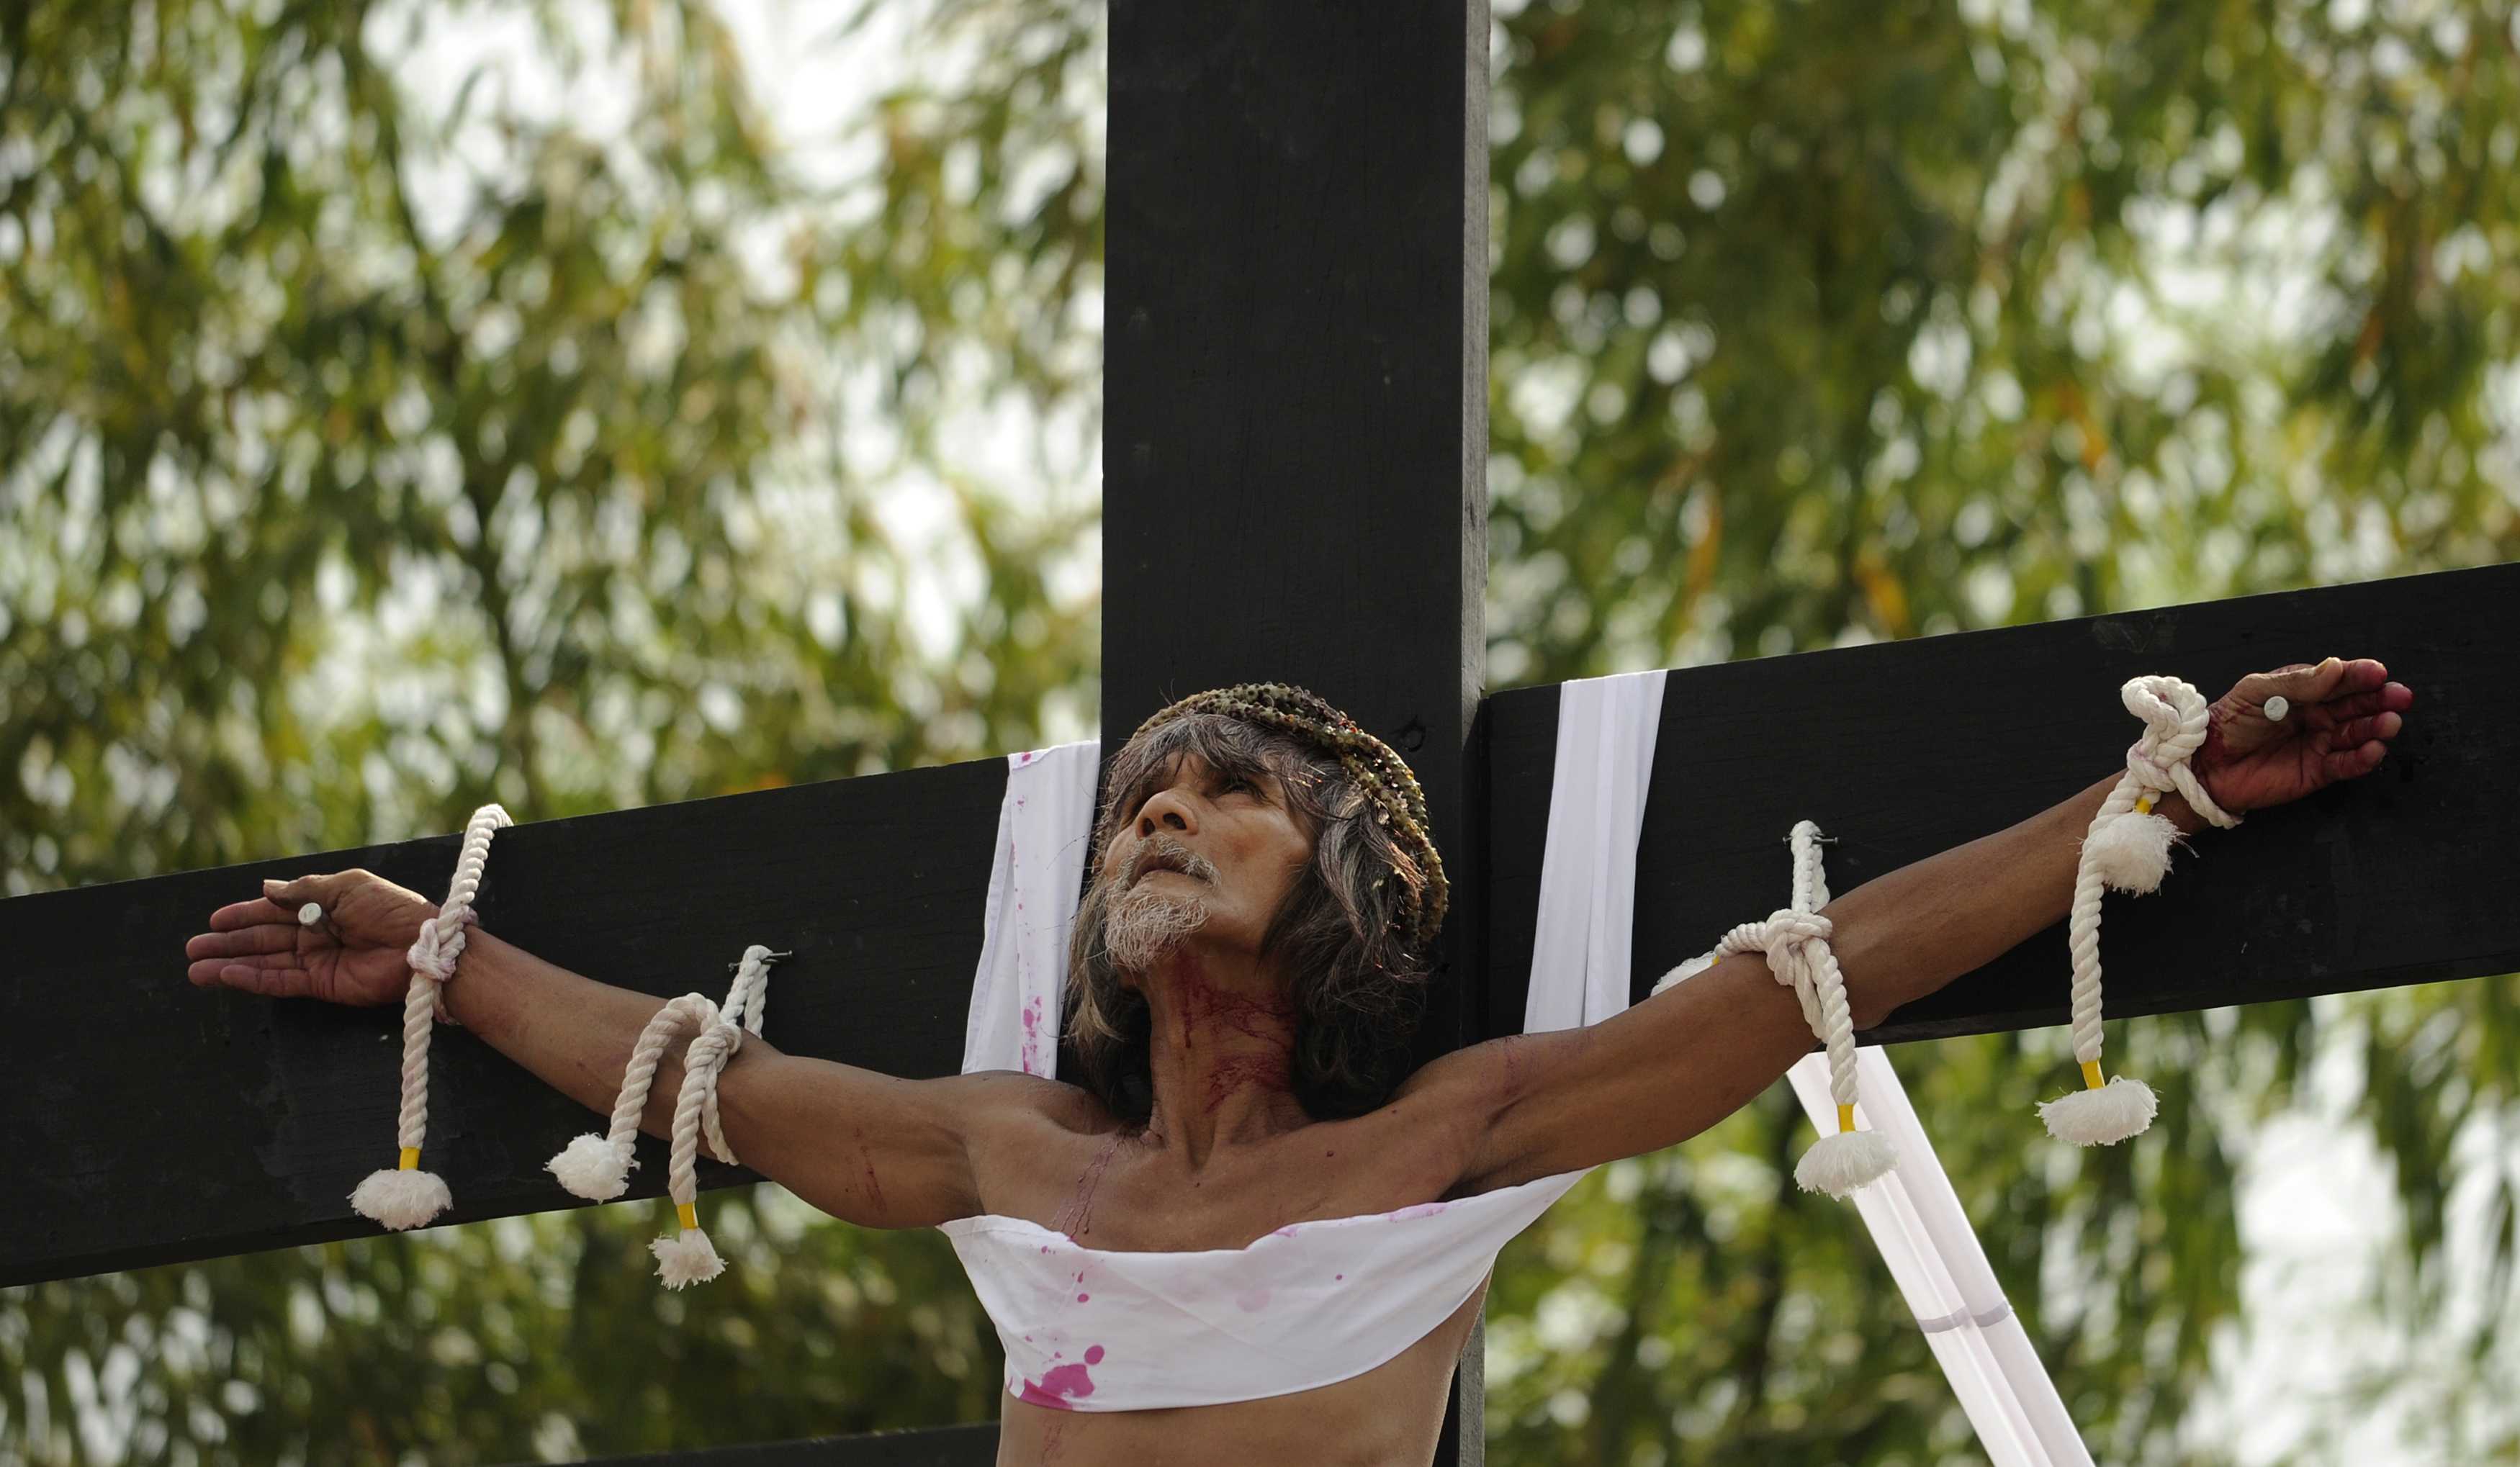 Willy Salvador, 59, hangs from a cross as part of his penitence during a reenactment of the crucifixion of Jesus Christ for Good Friday celebrations ahead of Easter in the village of San Juan, Pampanga, north of Manila on March 25, 2016. Christian devotees were nailed to crosses in the Philippines on March 25 as Asia's Catholic heartland marked Easter with an extreme display of faith. / AFP / NOEL CELIS